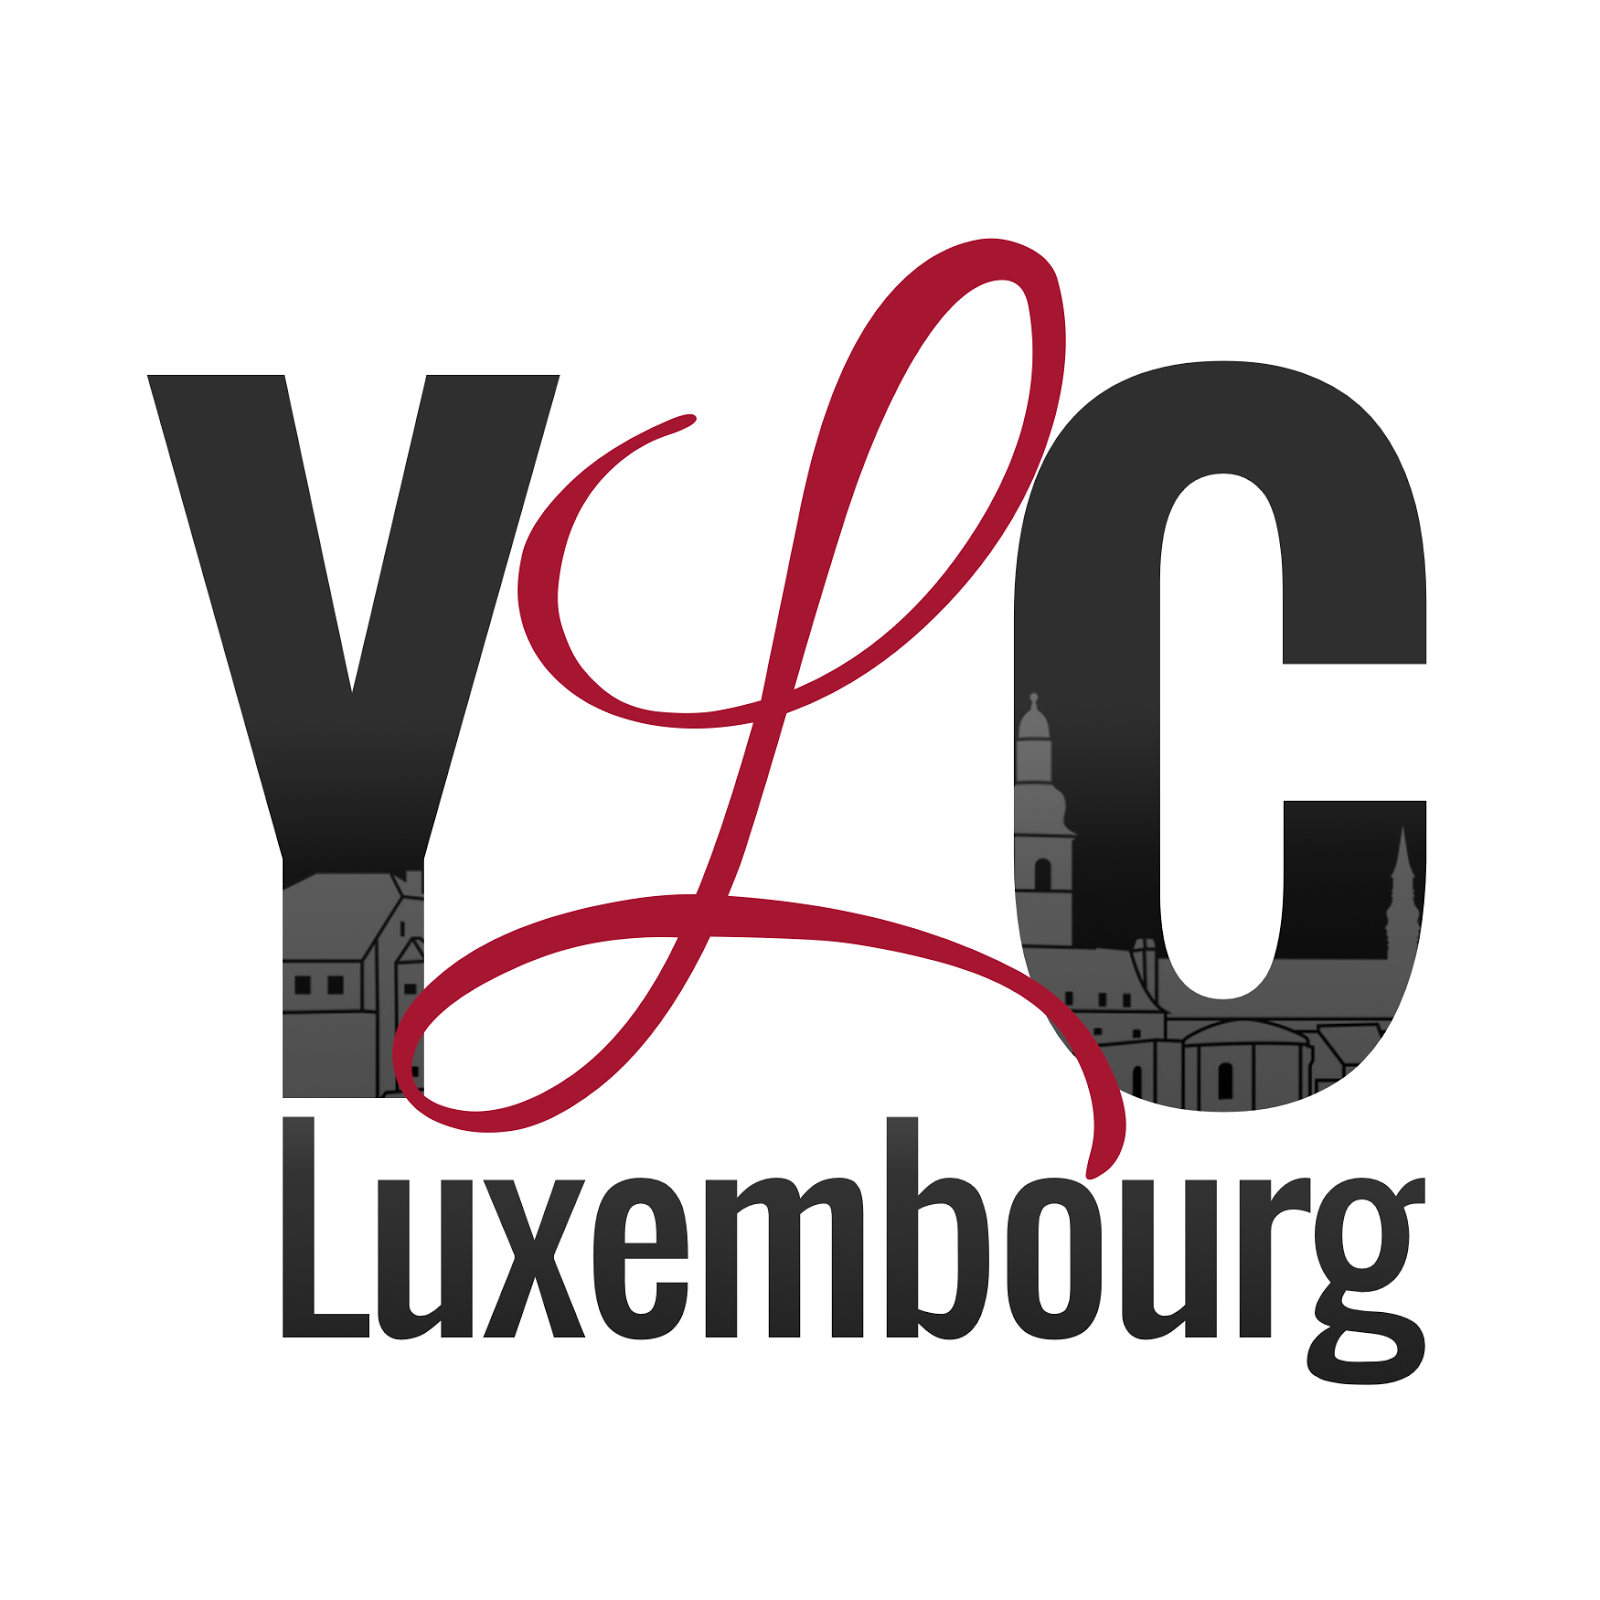 http://yourlivingcity.com/luxembourg/style-in-the-city/shopping/shop-local-this-christmas/